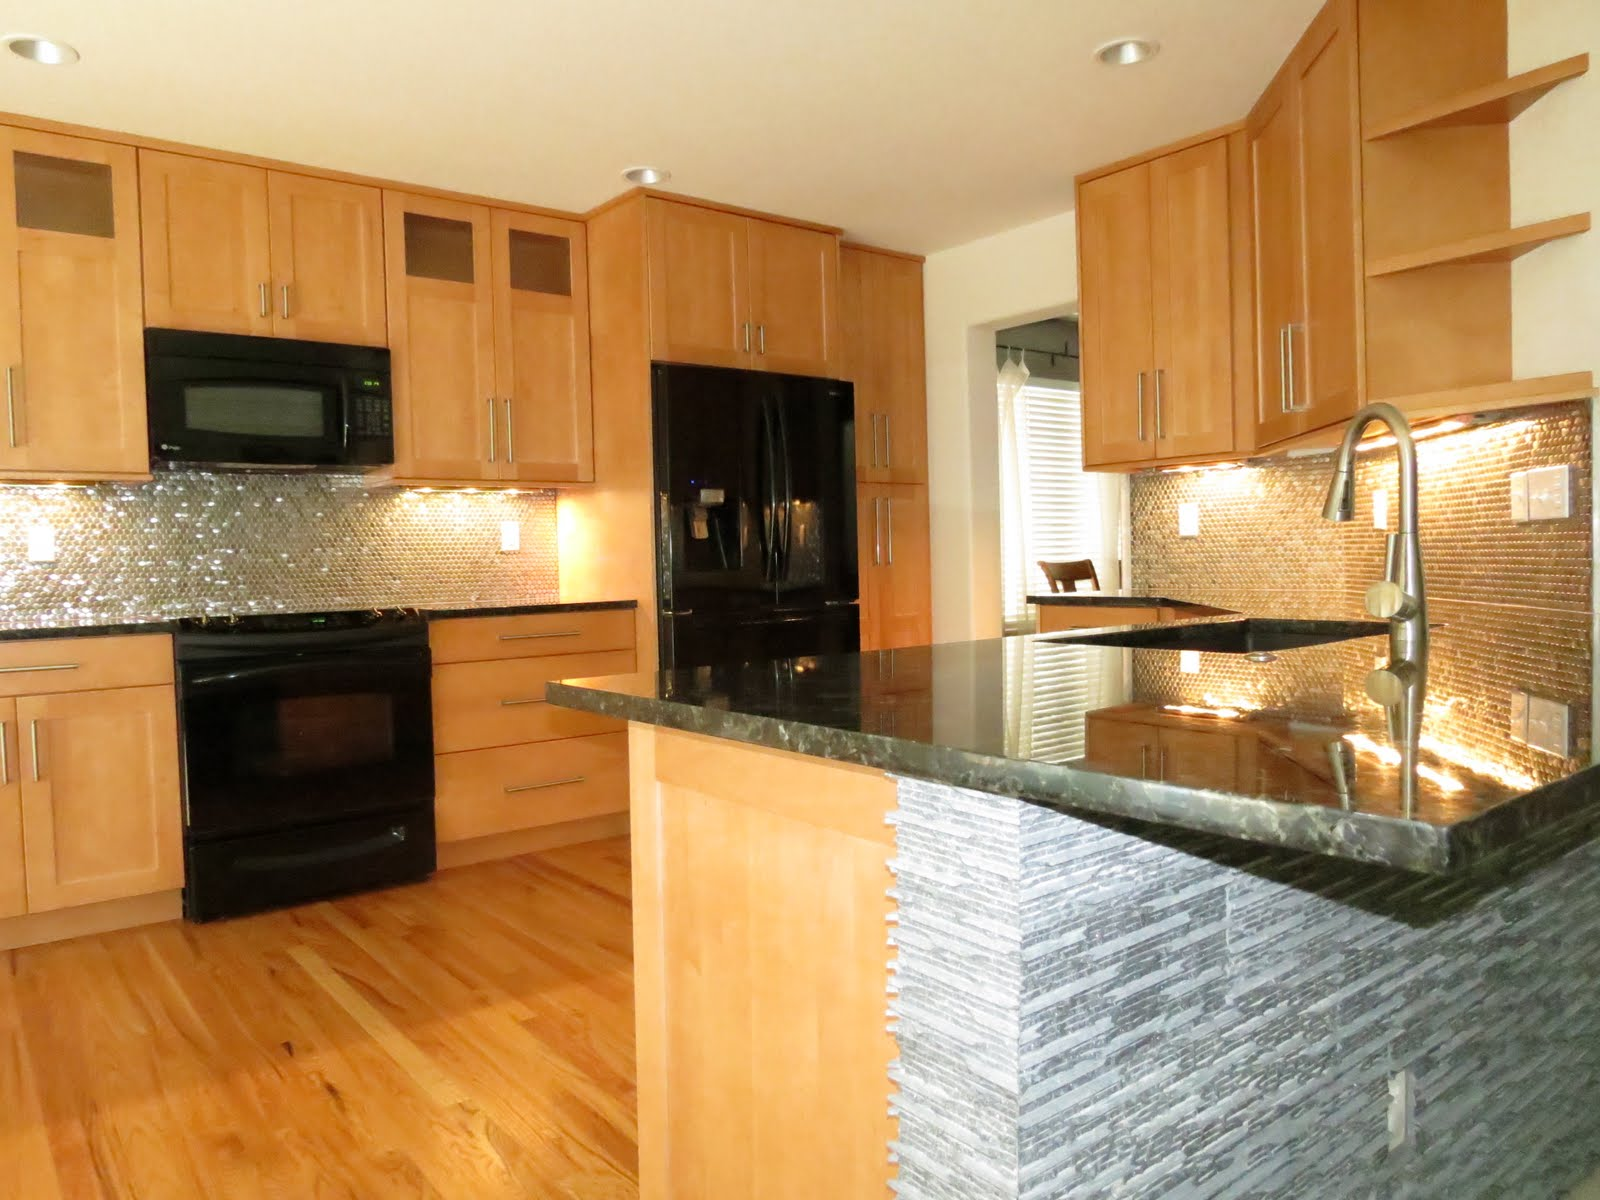 Kc cabinetry design and renovation for Maple cabinets